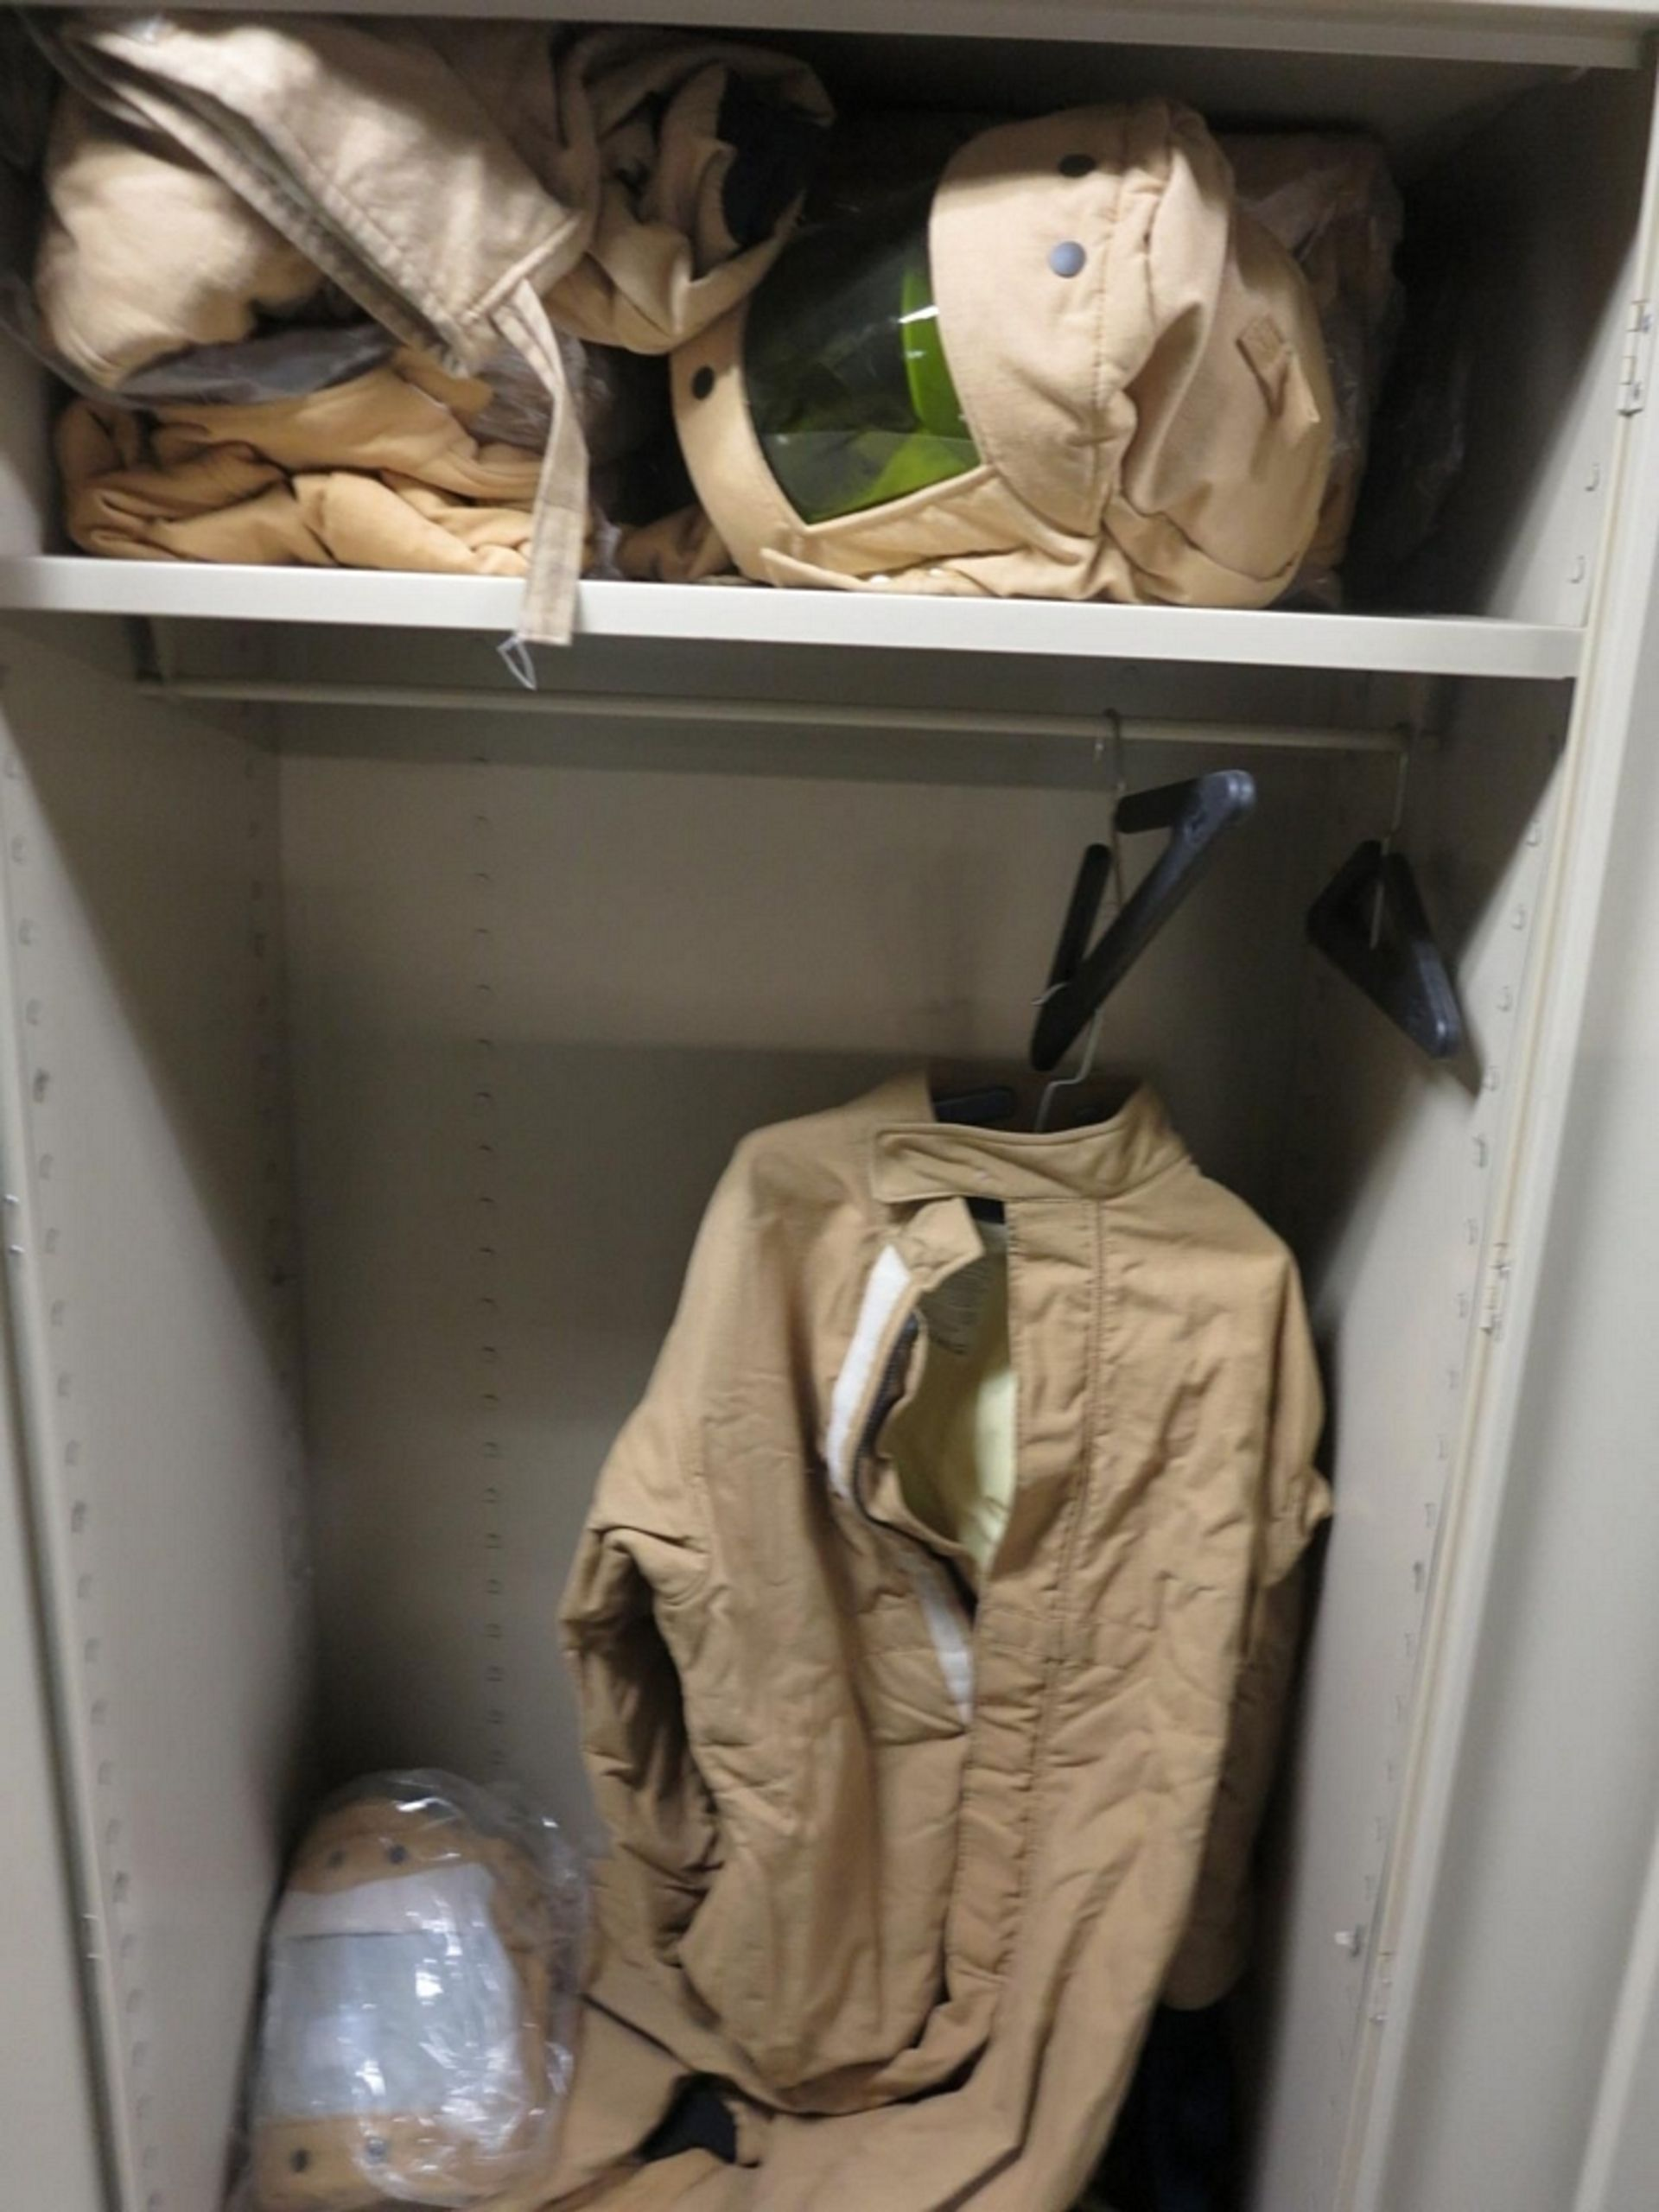 Lot 475 - LOT - (2) 2-DOOR STORAGE CABINETS W/ CONTENTS TO INCLUDE: ELECTRIC ARC PROTECTION SUITS